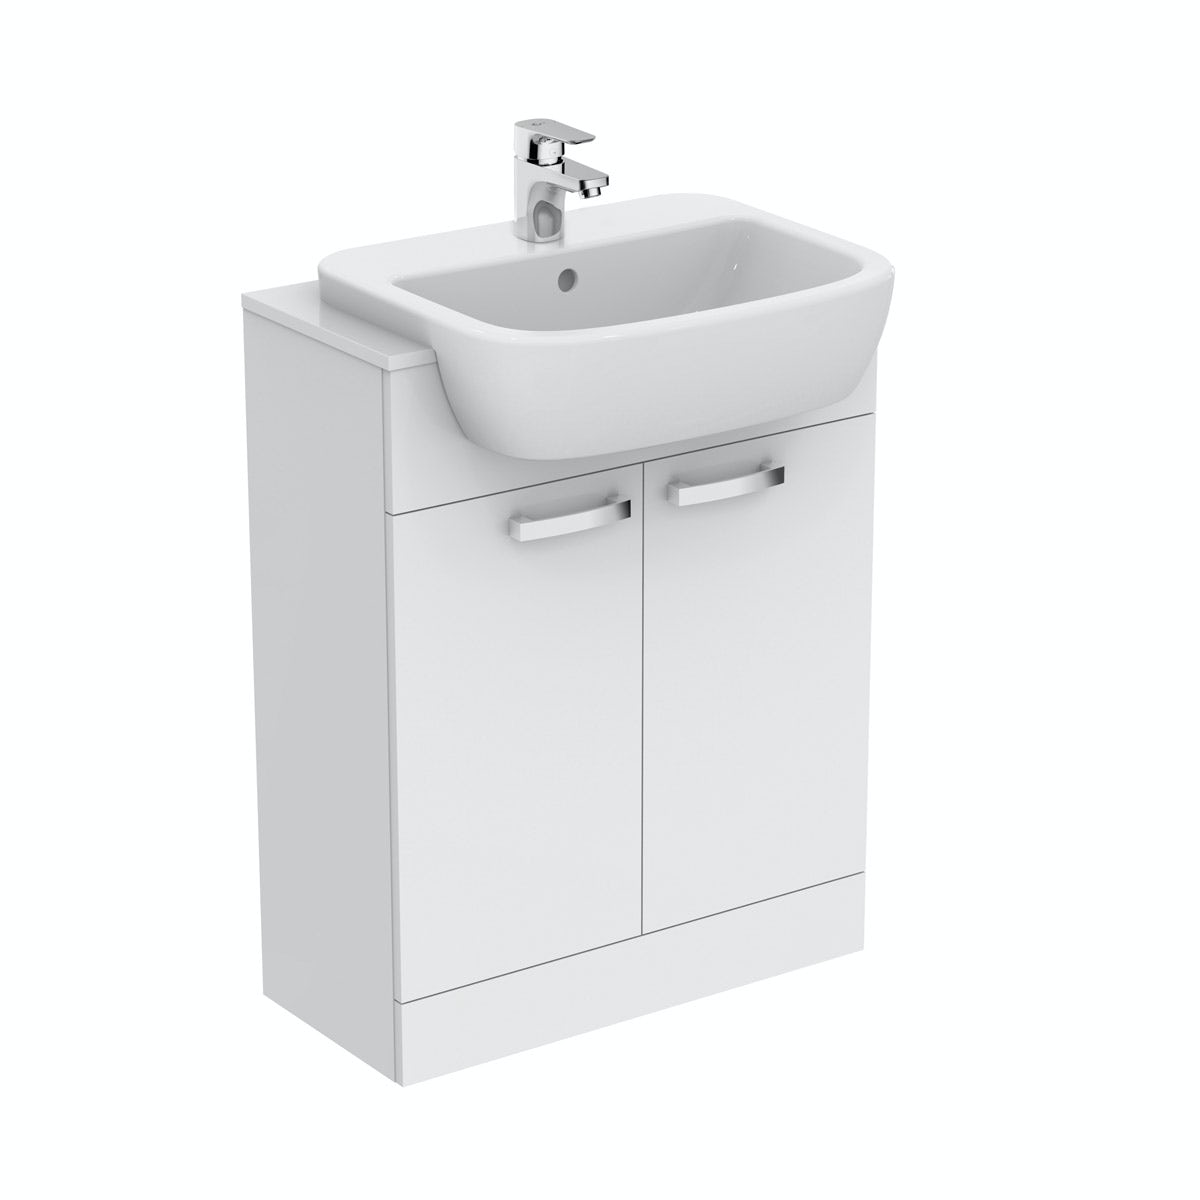 Ideal Standard Tempo gloss white vanity door unit and basin 650mm